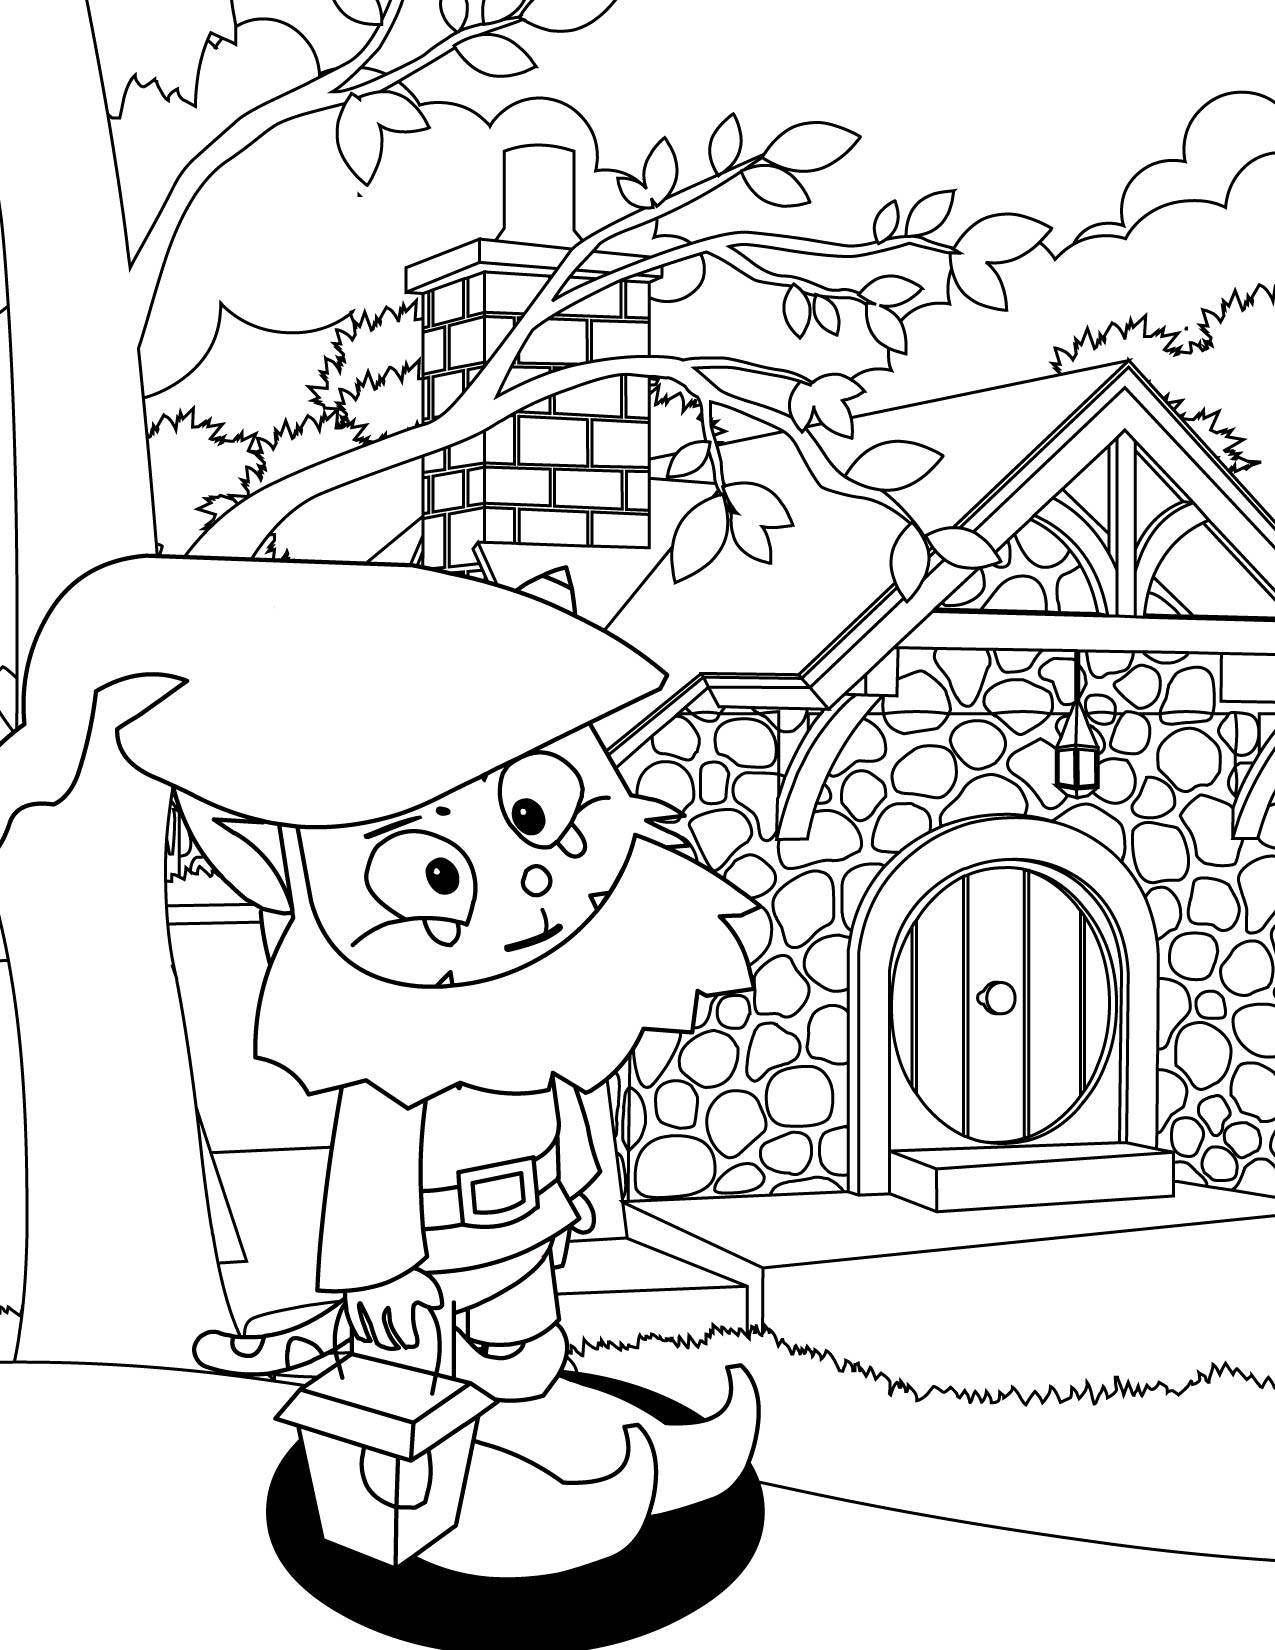 Gnome Coloring Page - Handipoints